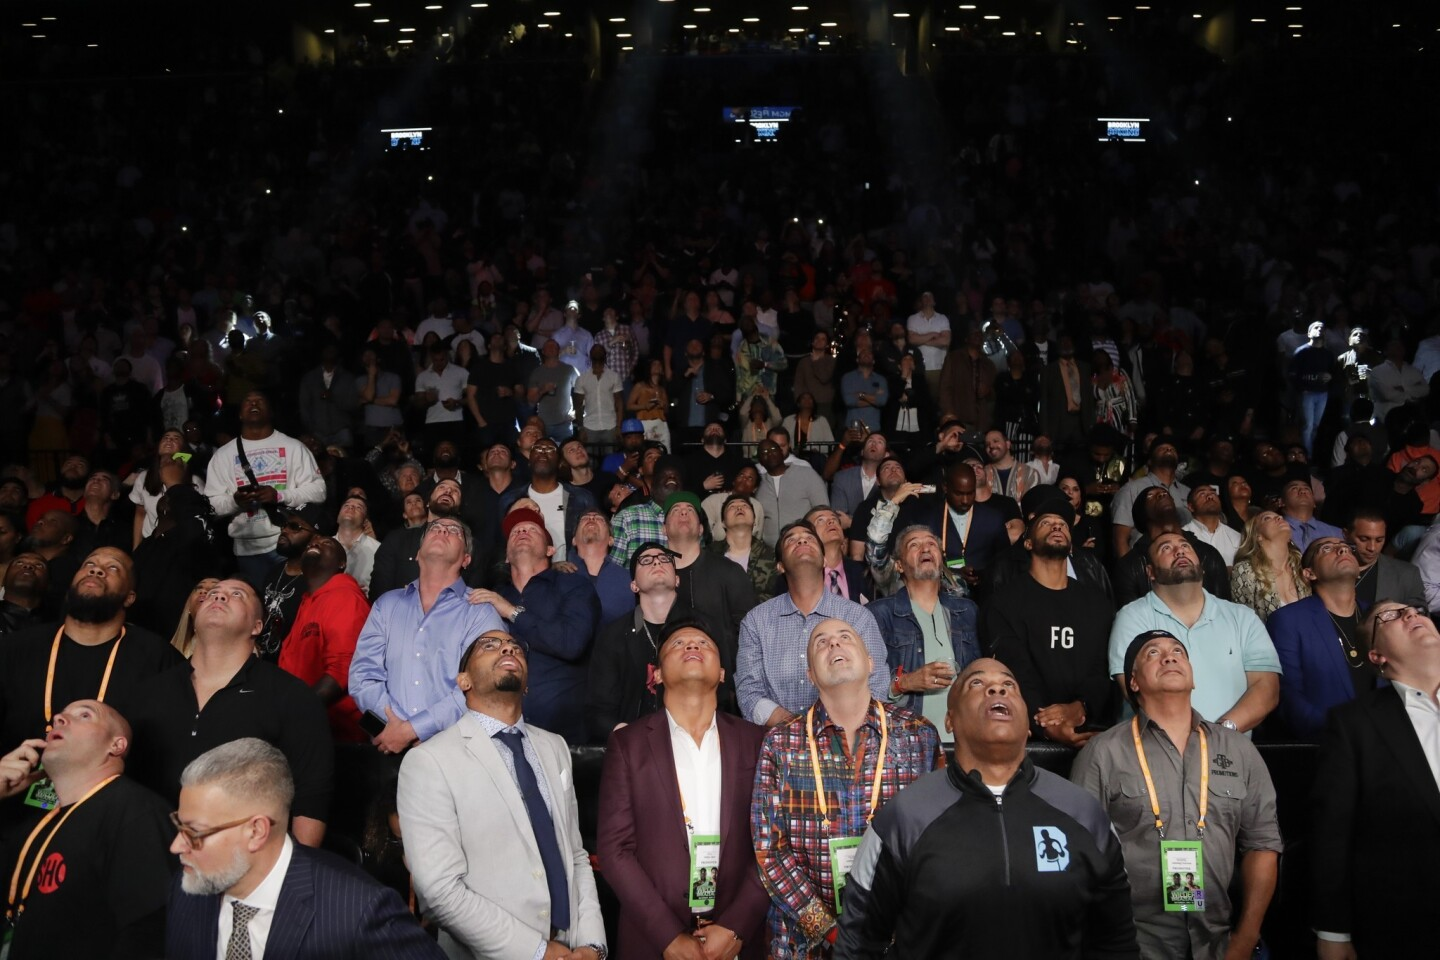 Fans watch the replay of the WBC heavyweight championship boxing match between Dominic Breazeale and Deontay Wilder on Saturday, May 18, 2019, in New York. Wilder won in the first round.